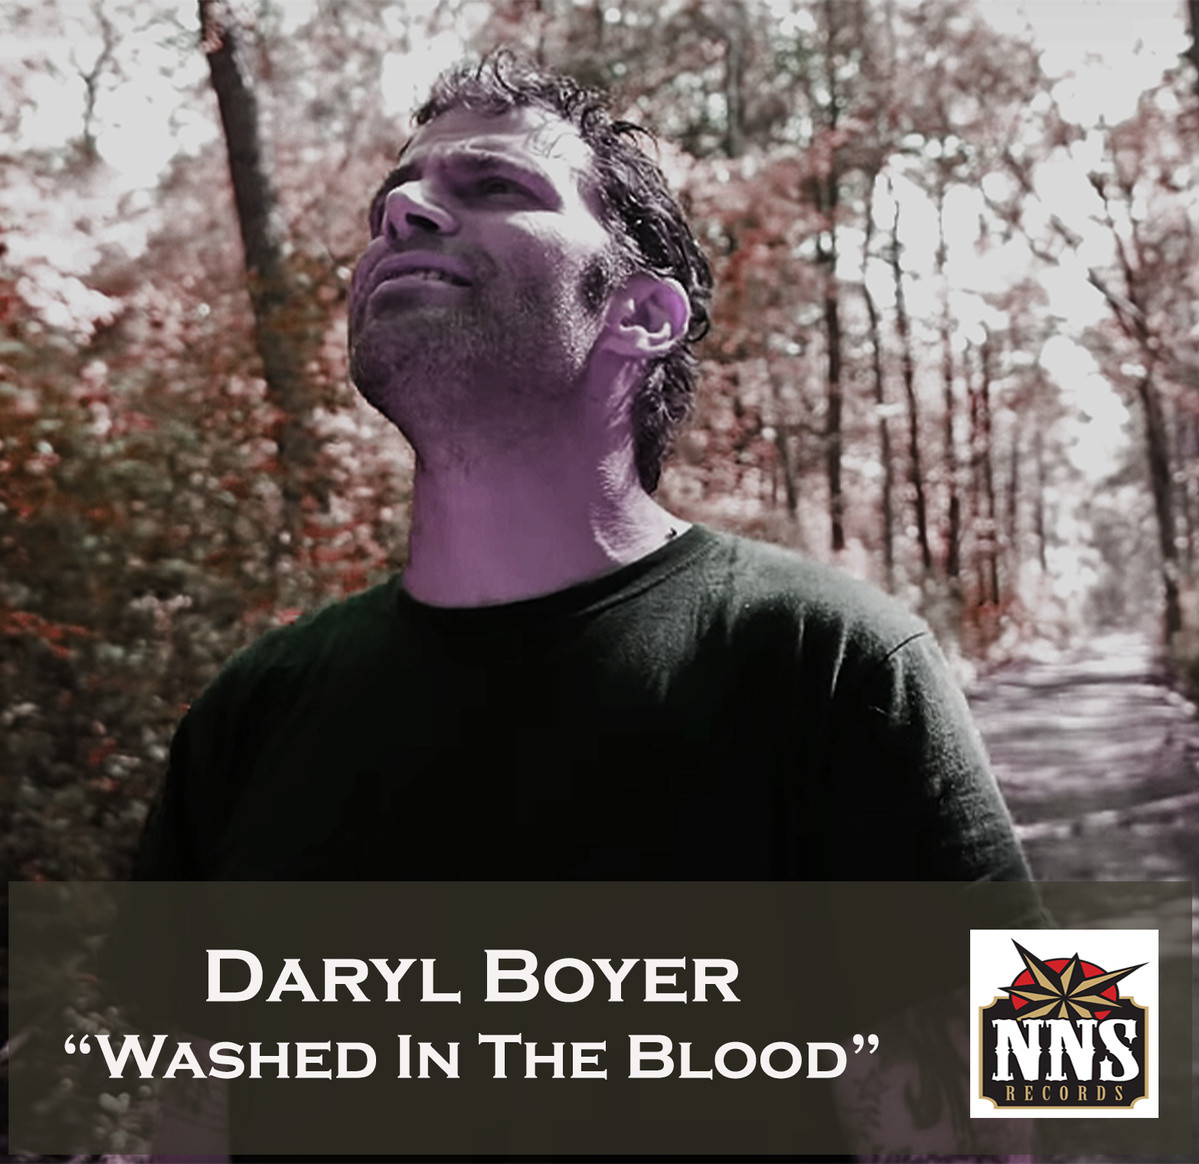 Daryl Boyer Returns With New Single 'Washed In The Blood' Ahead of 'Who I Am' EP